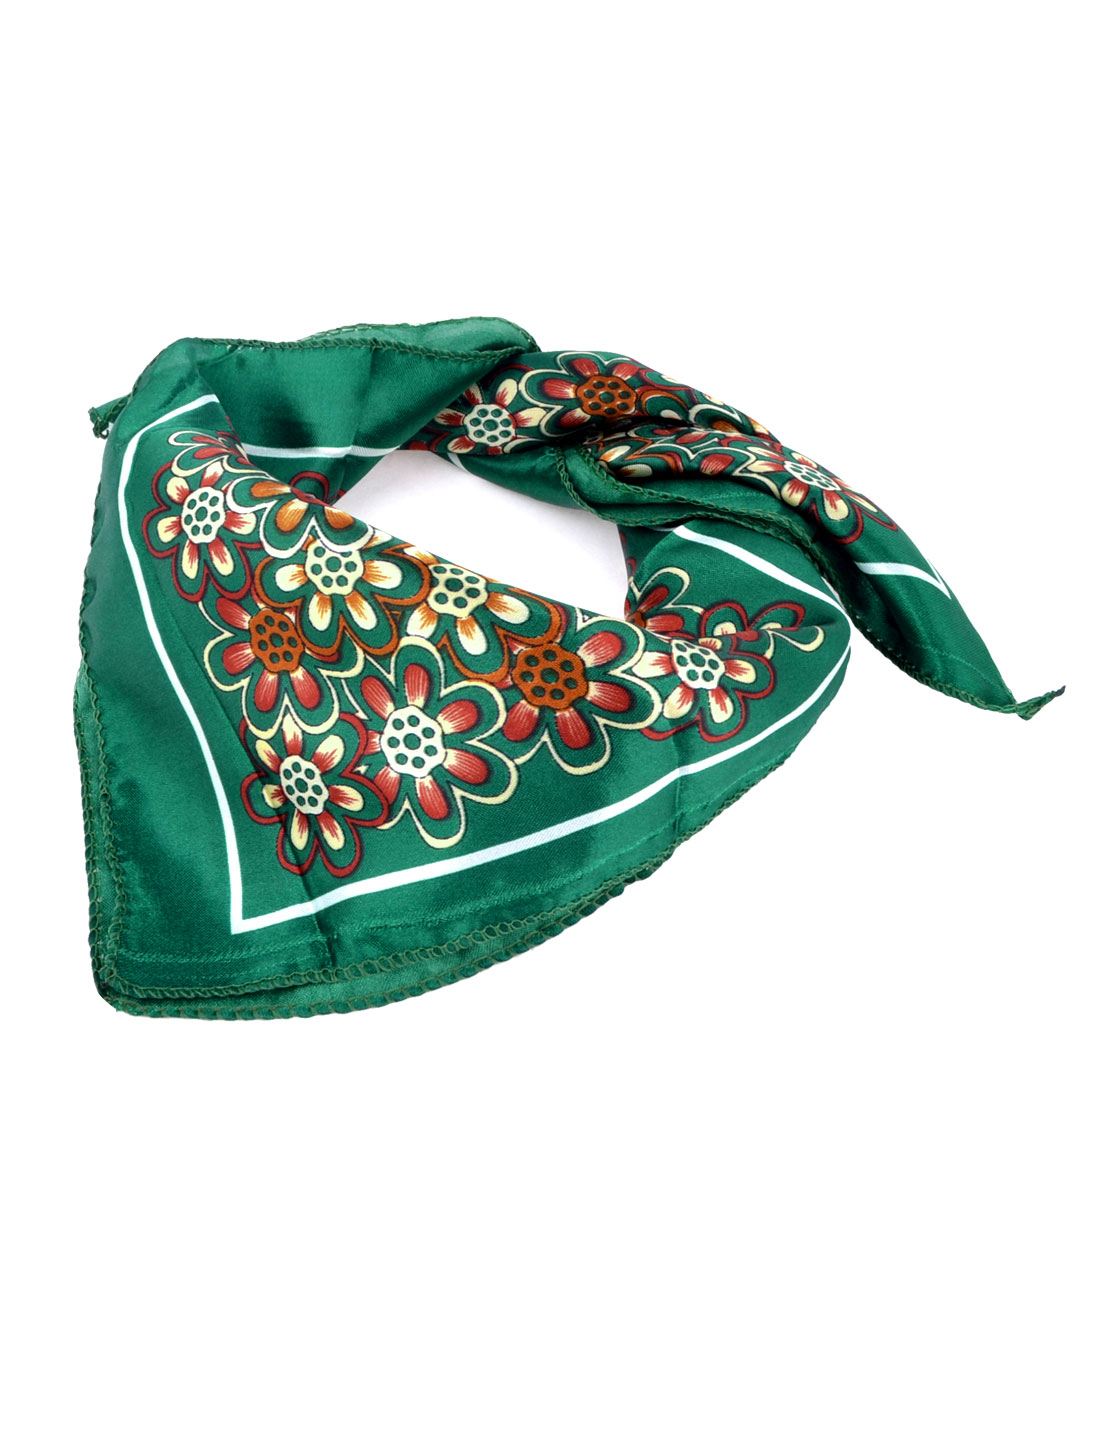 "Women Floral Prints Polish Style Polyester Neck Scarf Kerchief Ornament Dark Green White 20""x20"""